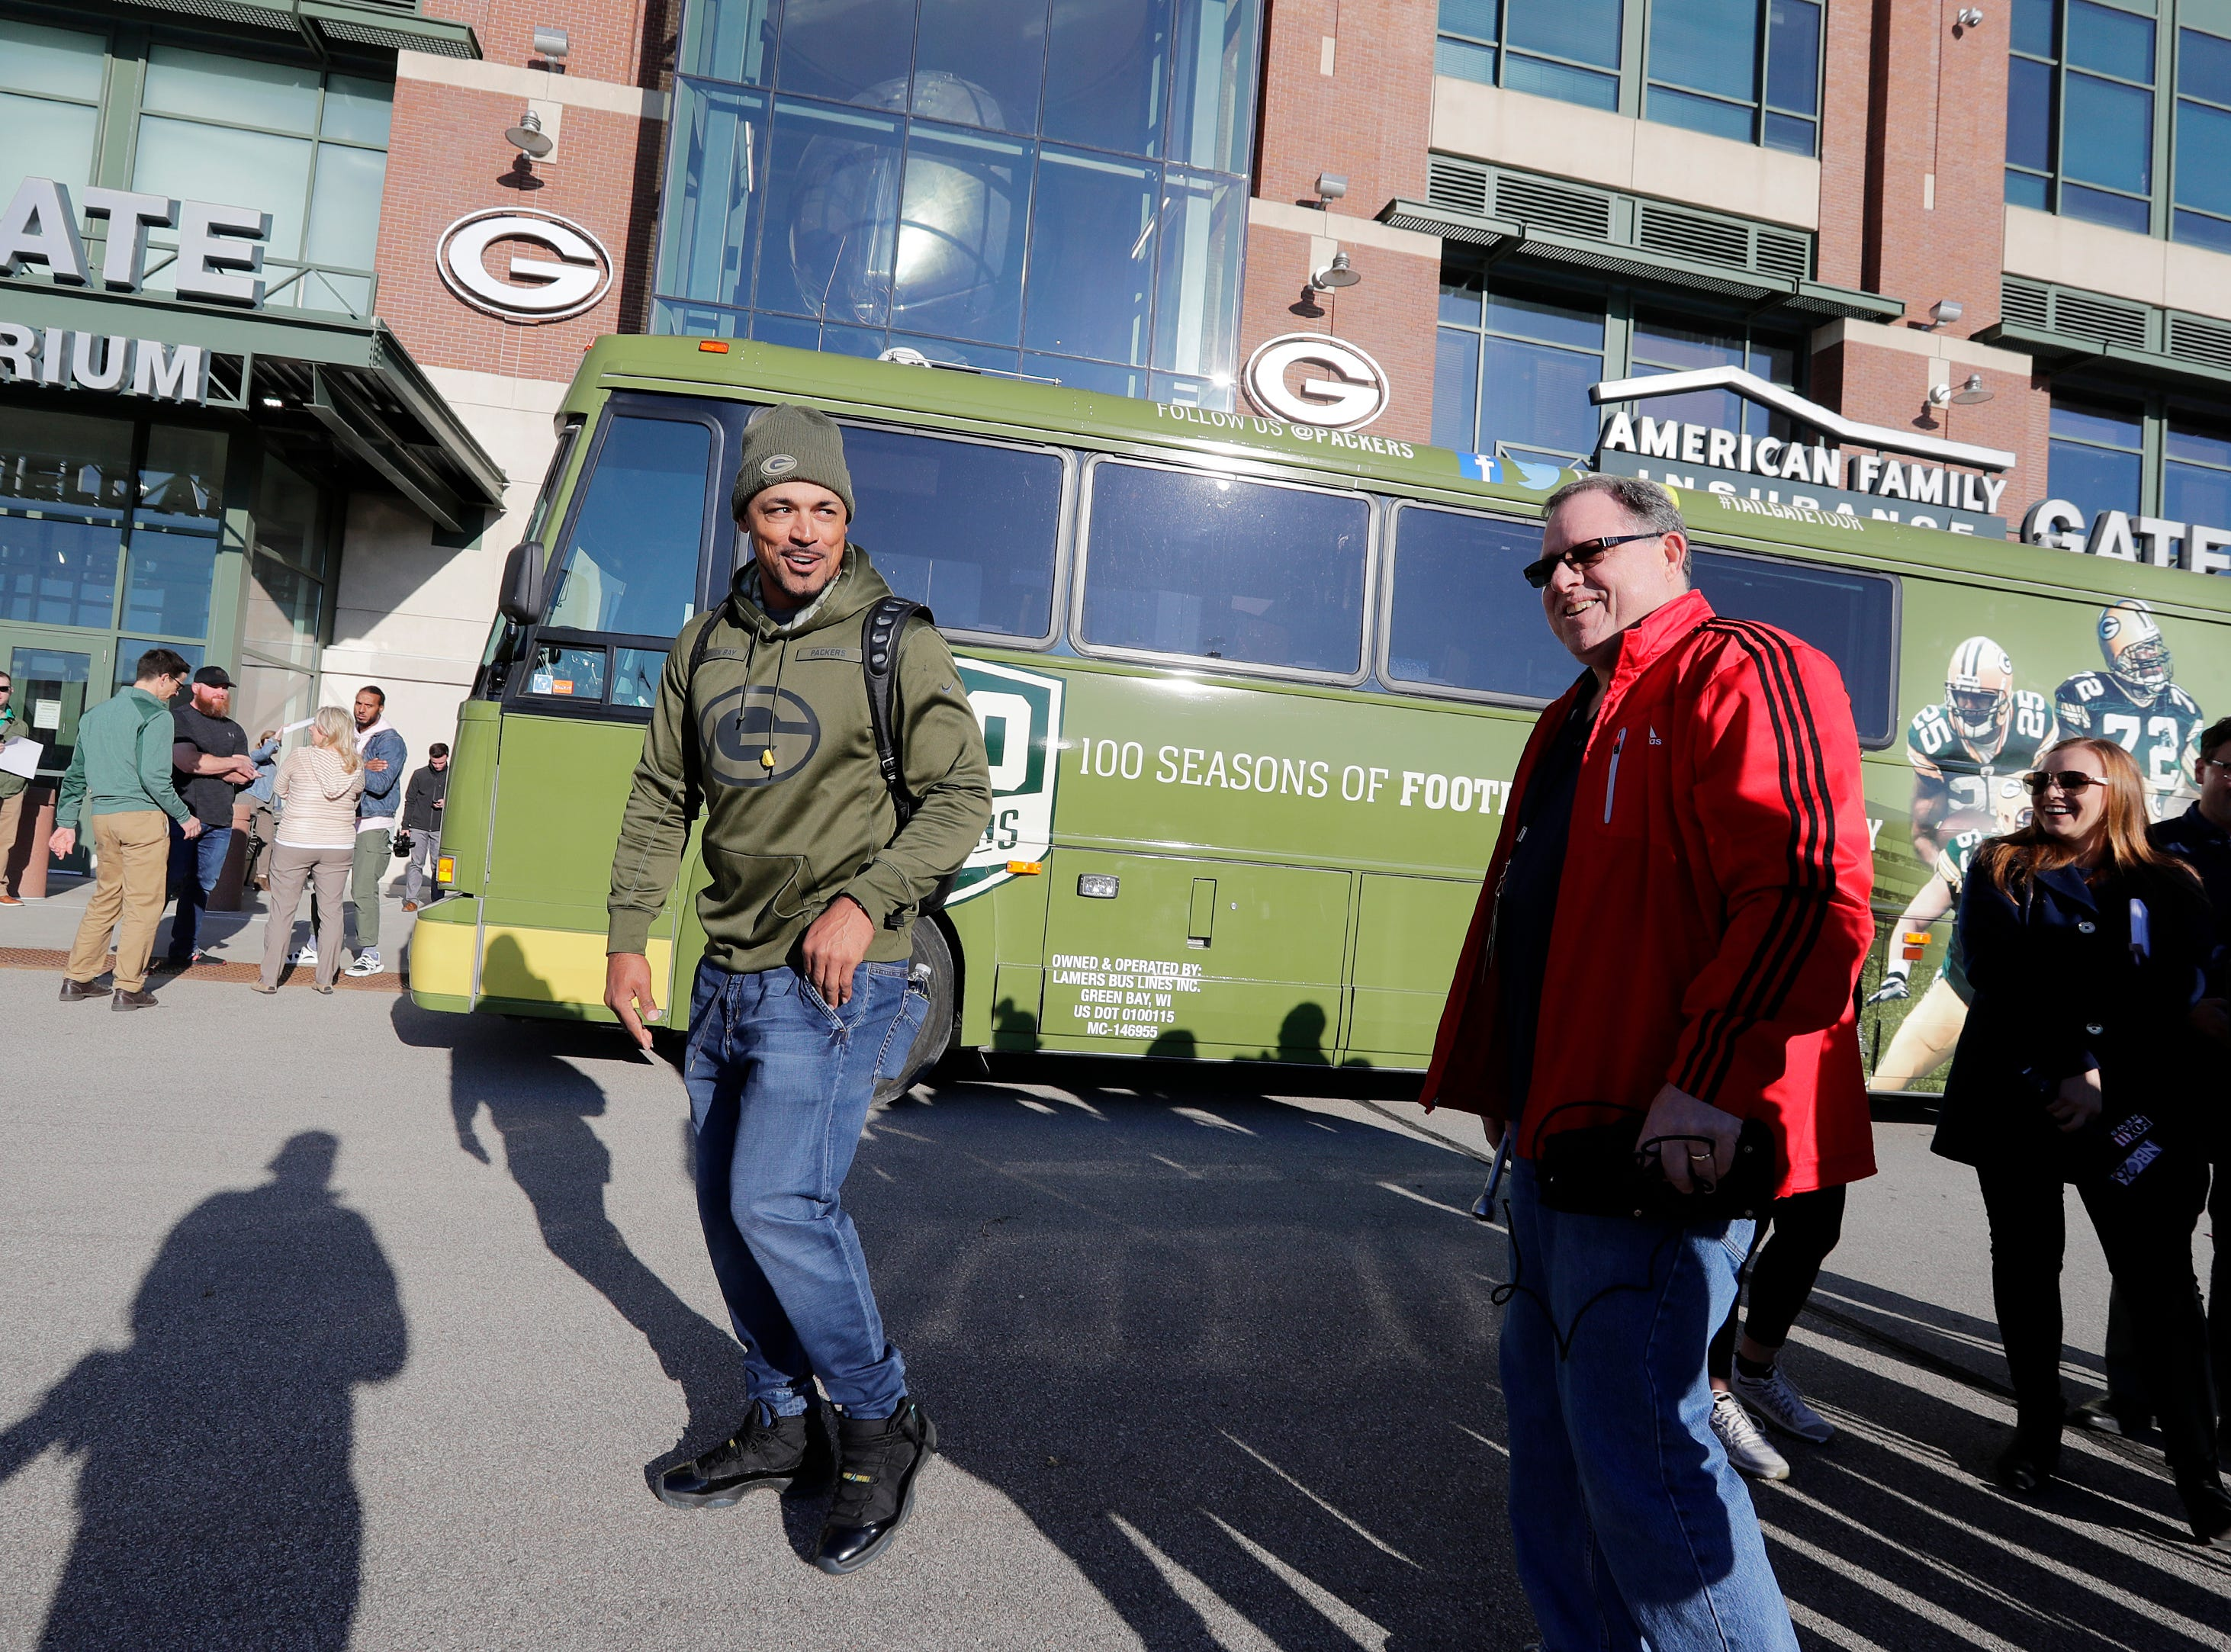 Former Green Bay Packers player Nick Barnett boards the bus for the Packers Tailgate Tour at Lambeau Field on Tuesday, April 9, 2019 in Green Bay, Wis.